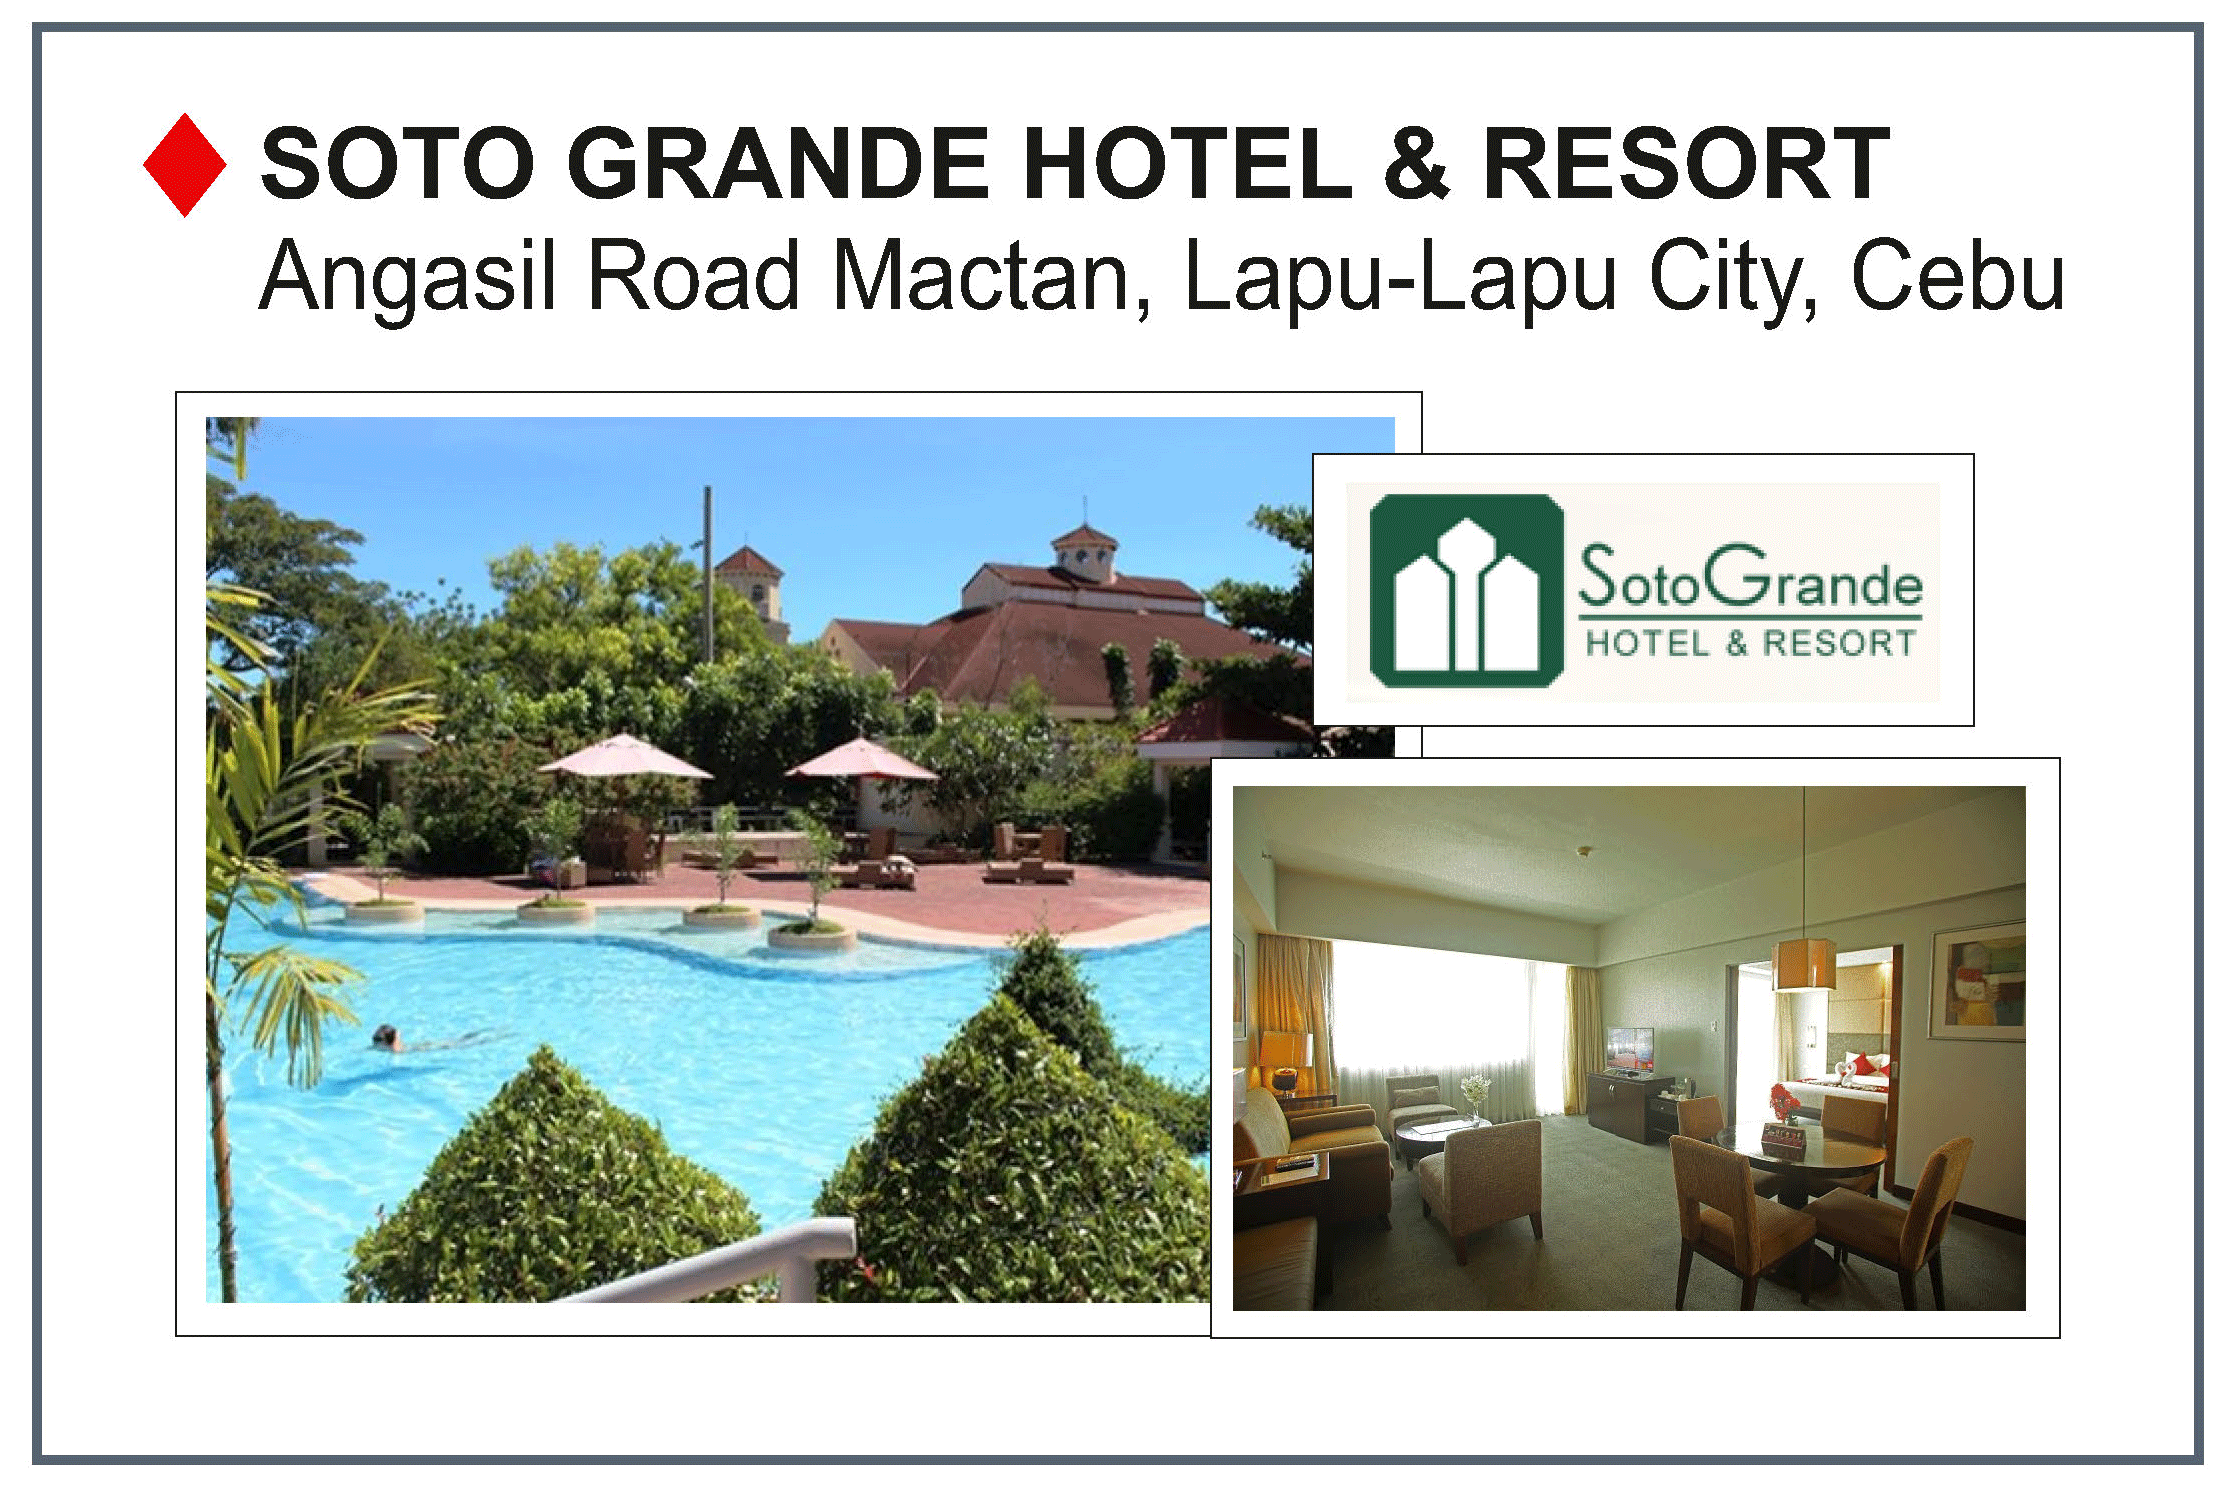 SOTO-GRANDE-HOTEL-AND-RESORT